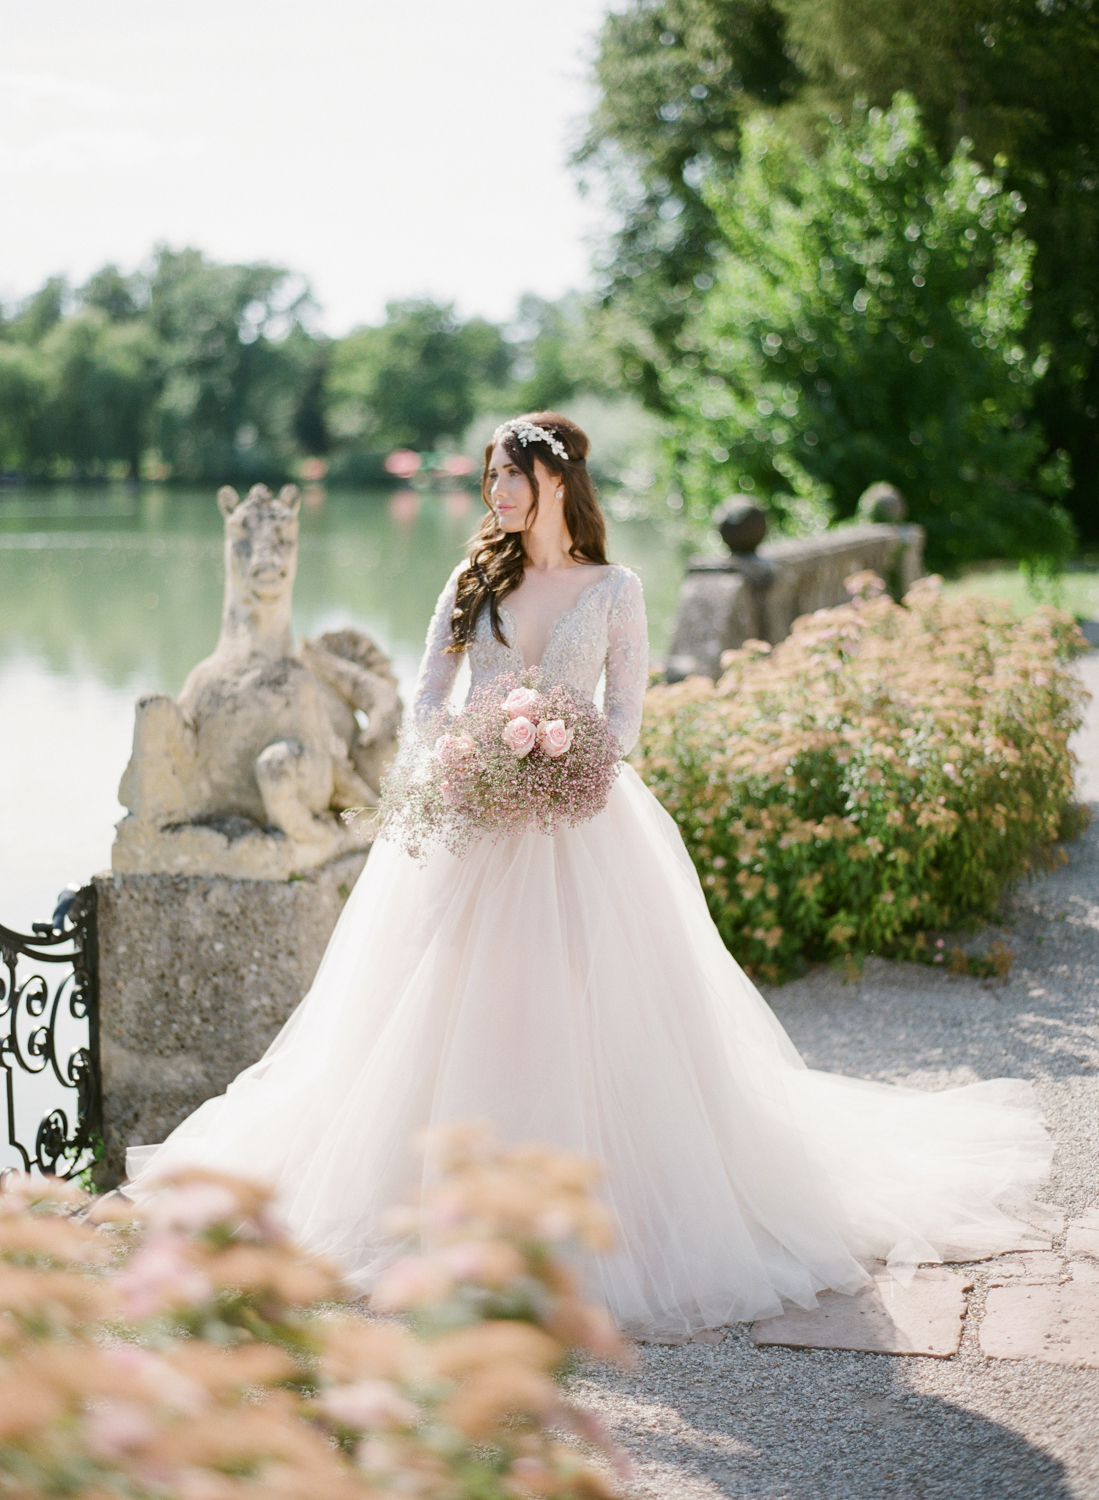 lake_como_wedding_photographer_nikol_bodnarova_147.JPG